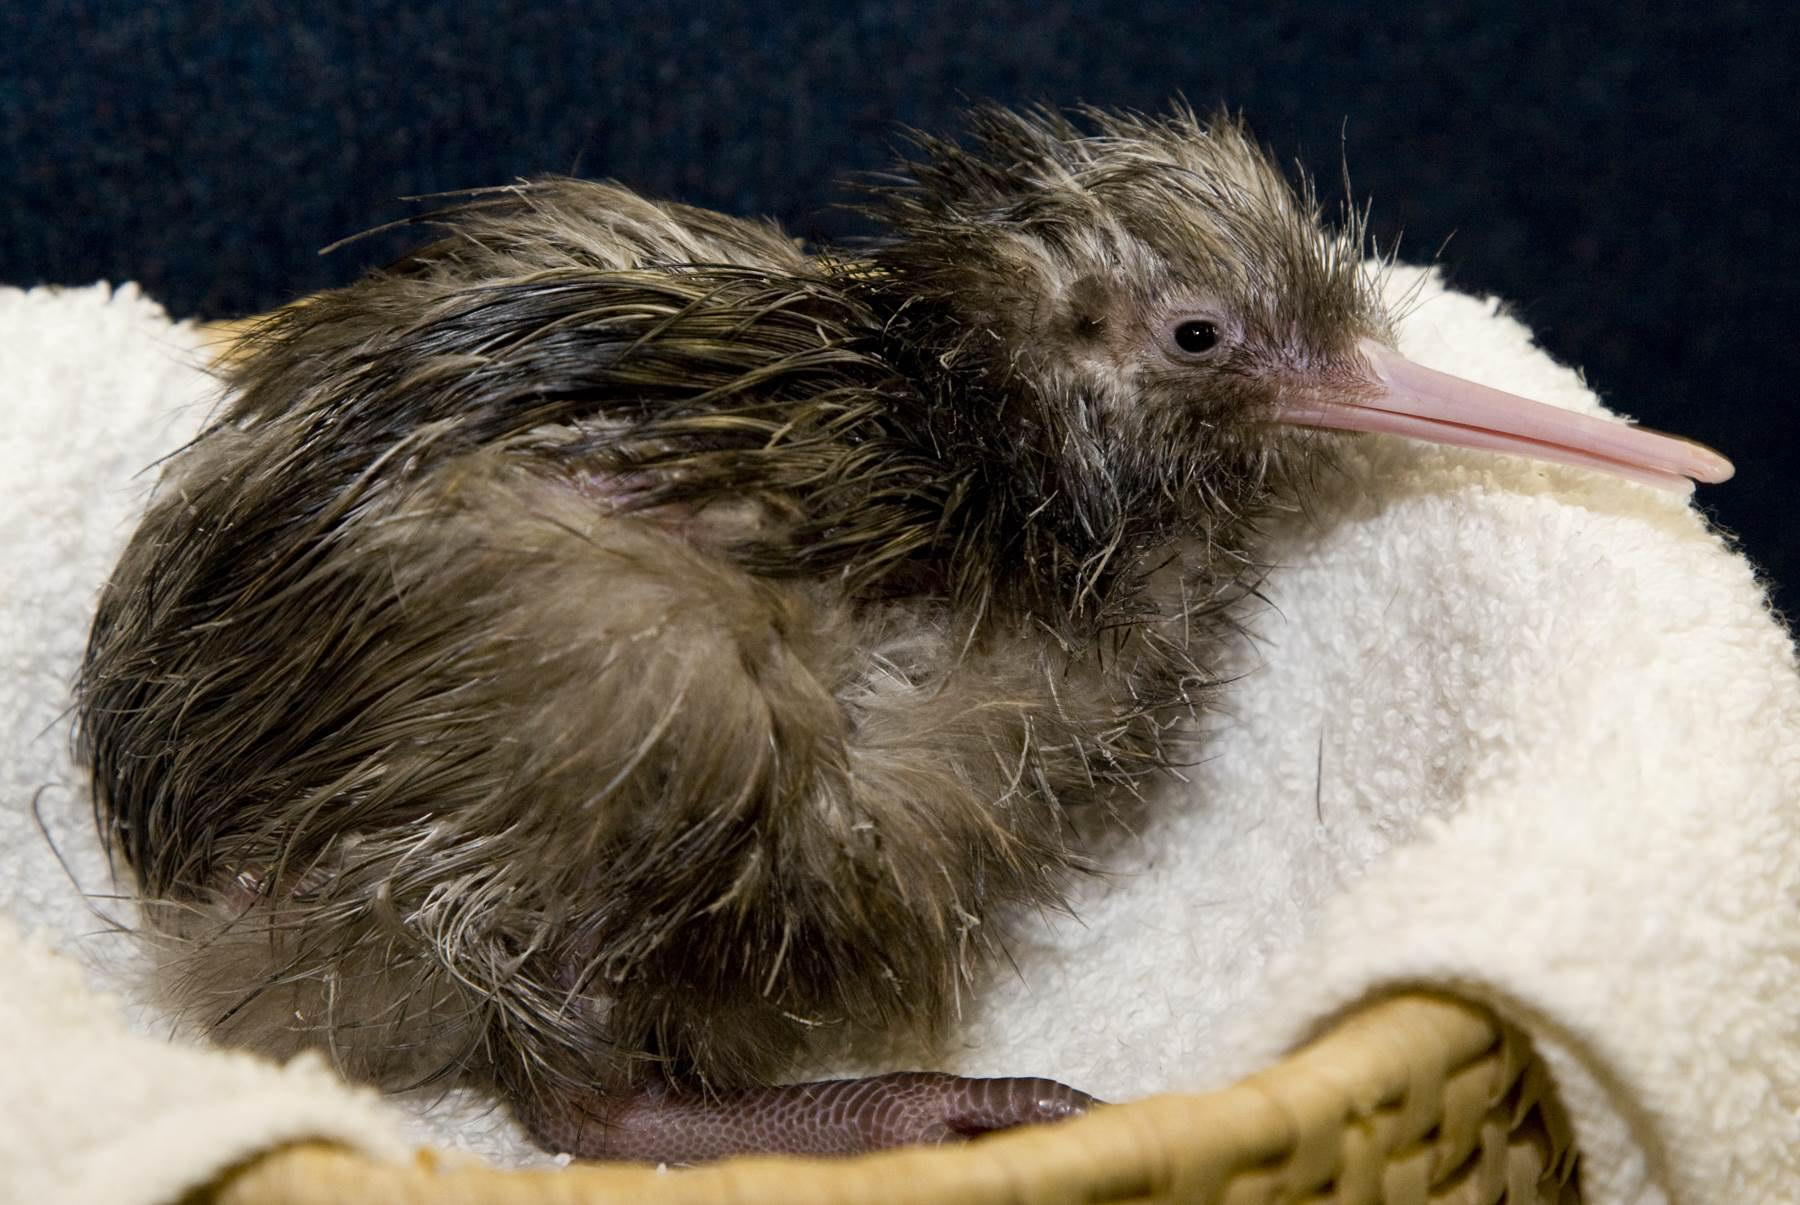 kiwi bird facts - The Zoo's brown kiwi chick hatched